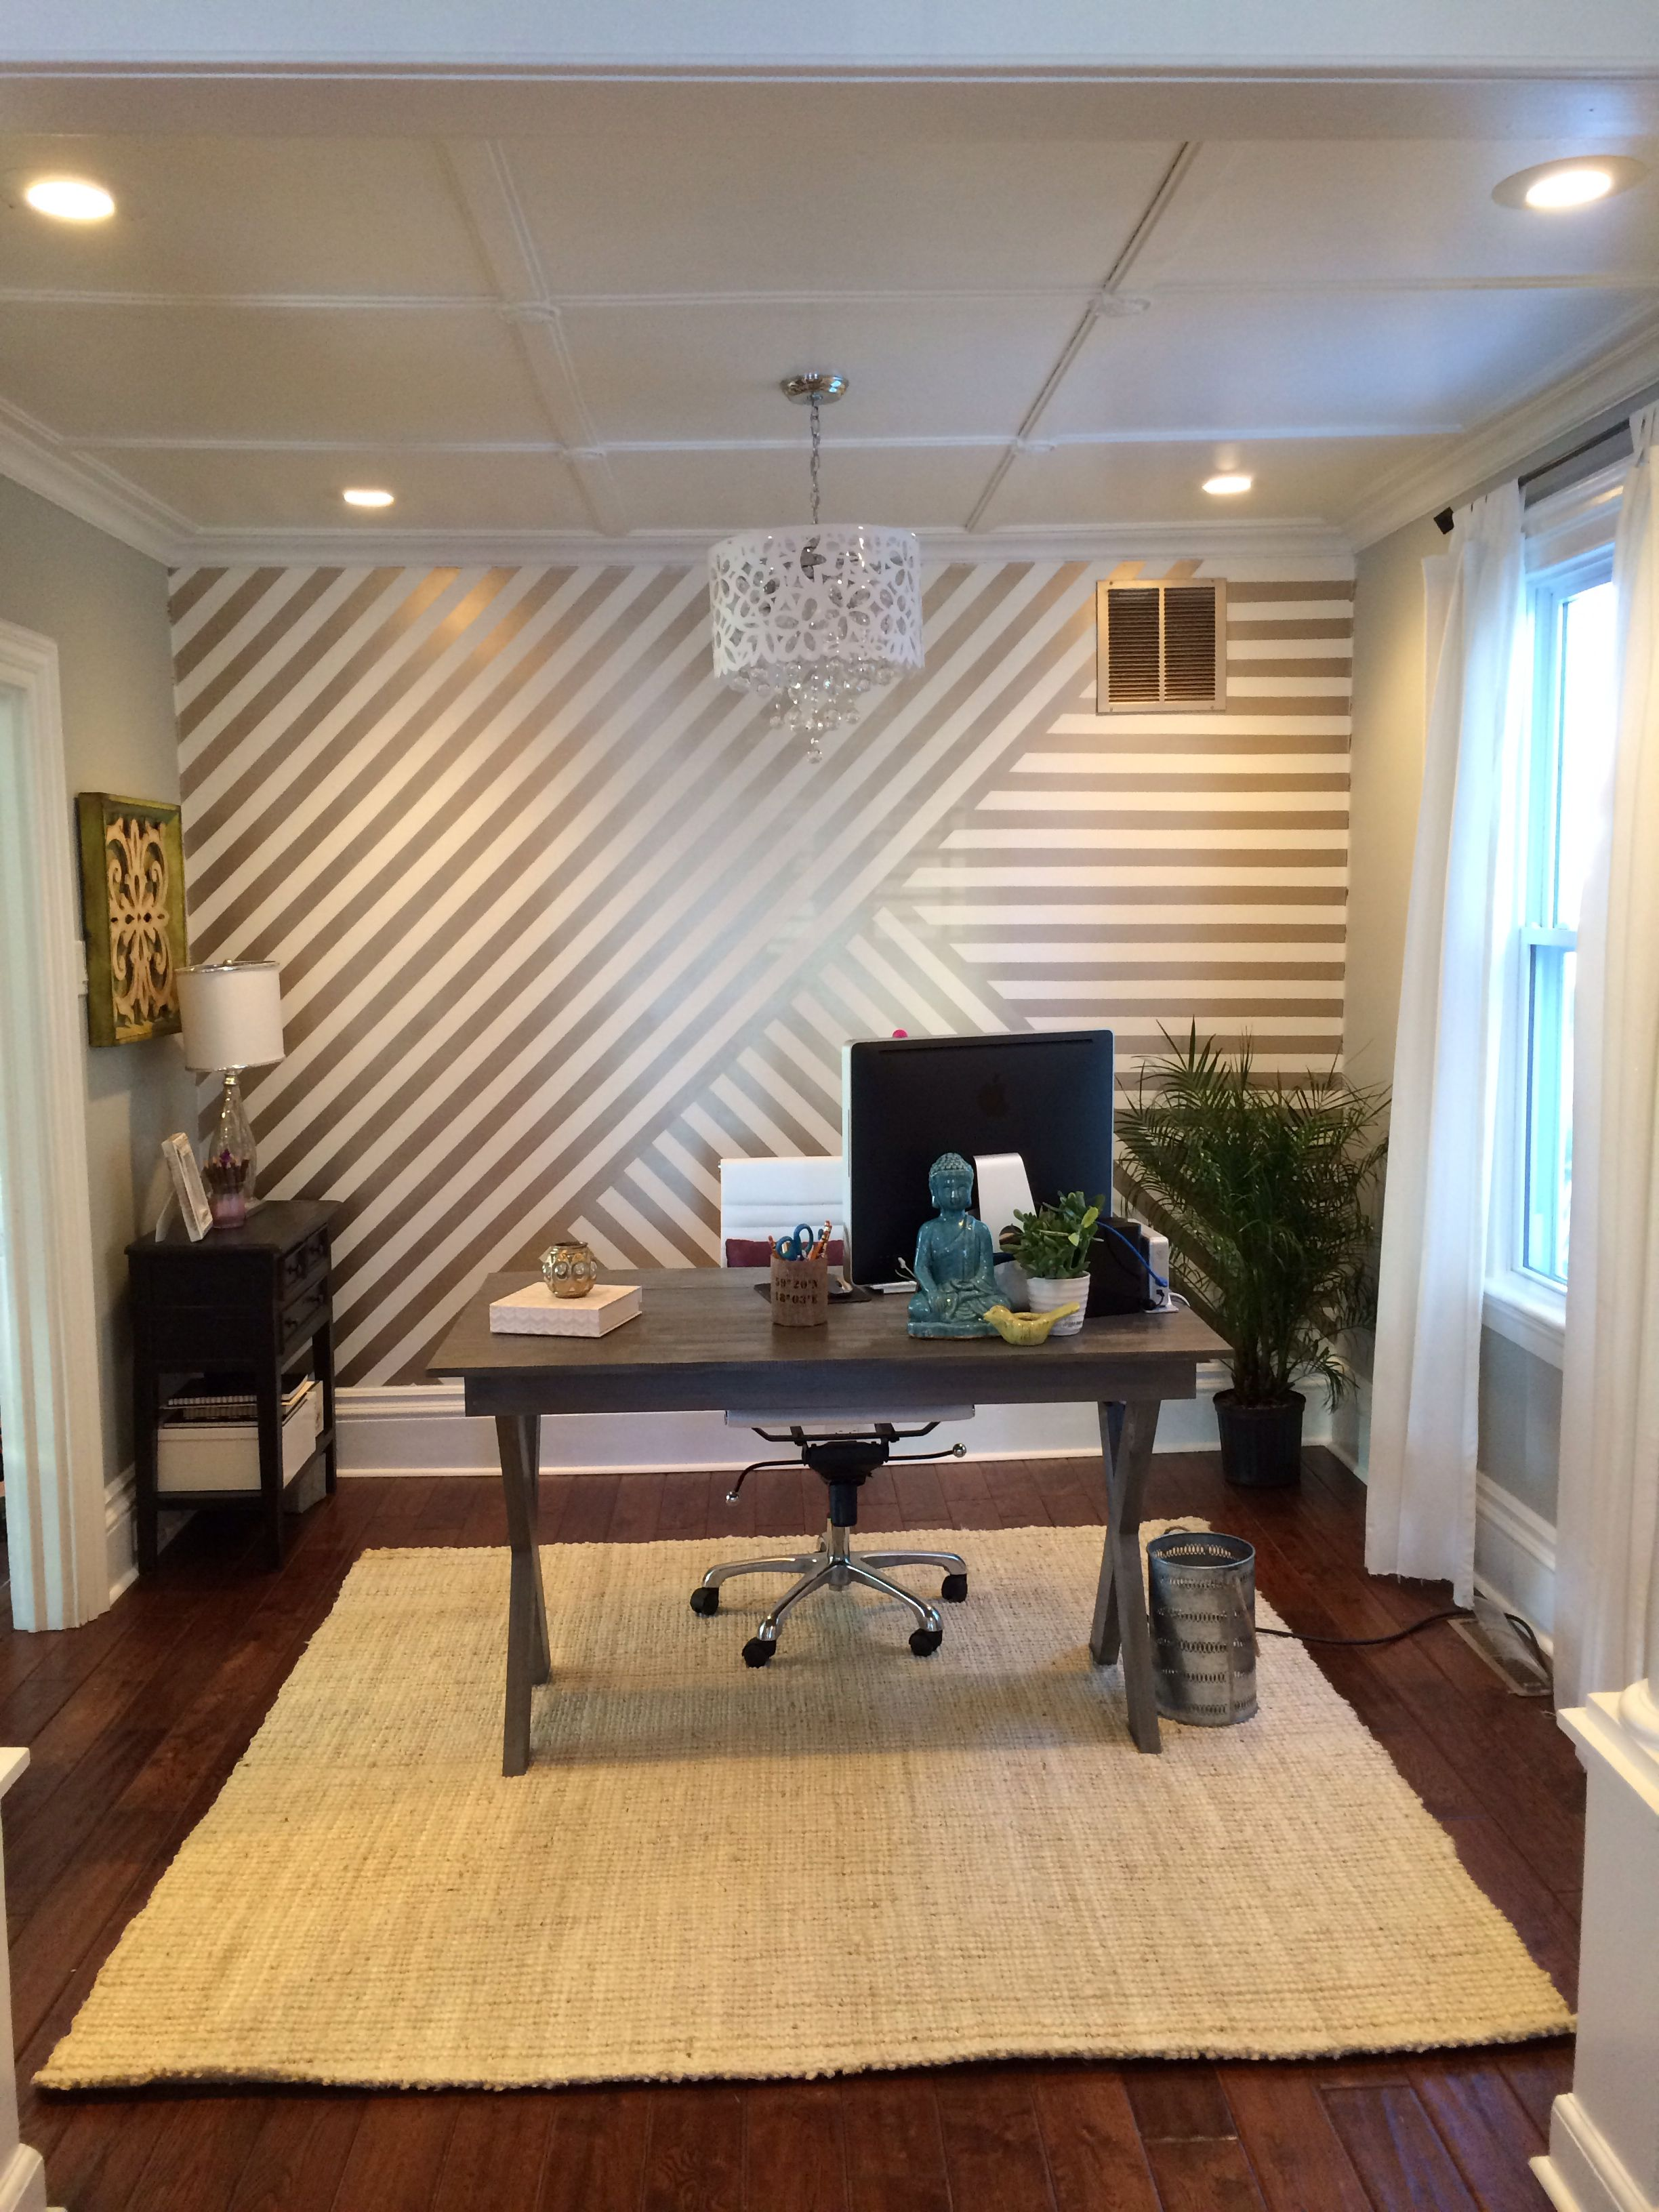 My new home office gold stripes maybe chevron ish diy desk with x legs jute rug and a white chandelier from overstock turned out so pretty